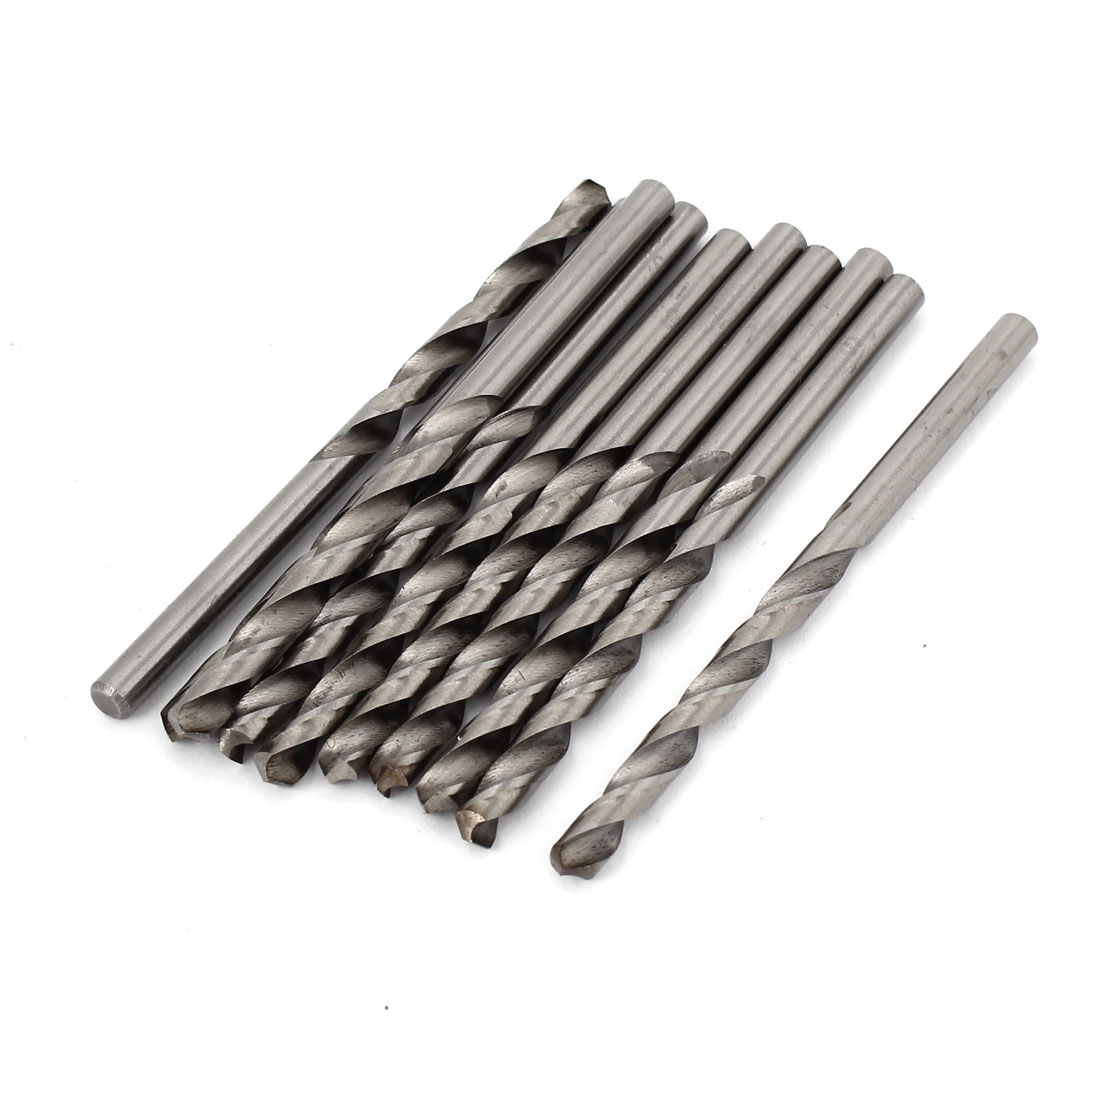 10pcs 4.1mmx45mm High Speed Steel Straight Shank 2 Flutes Twist Drilling Bit